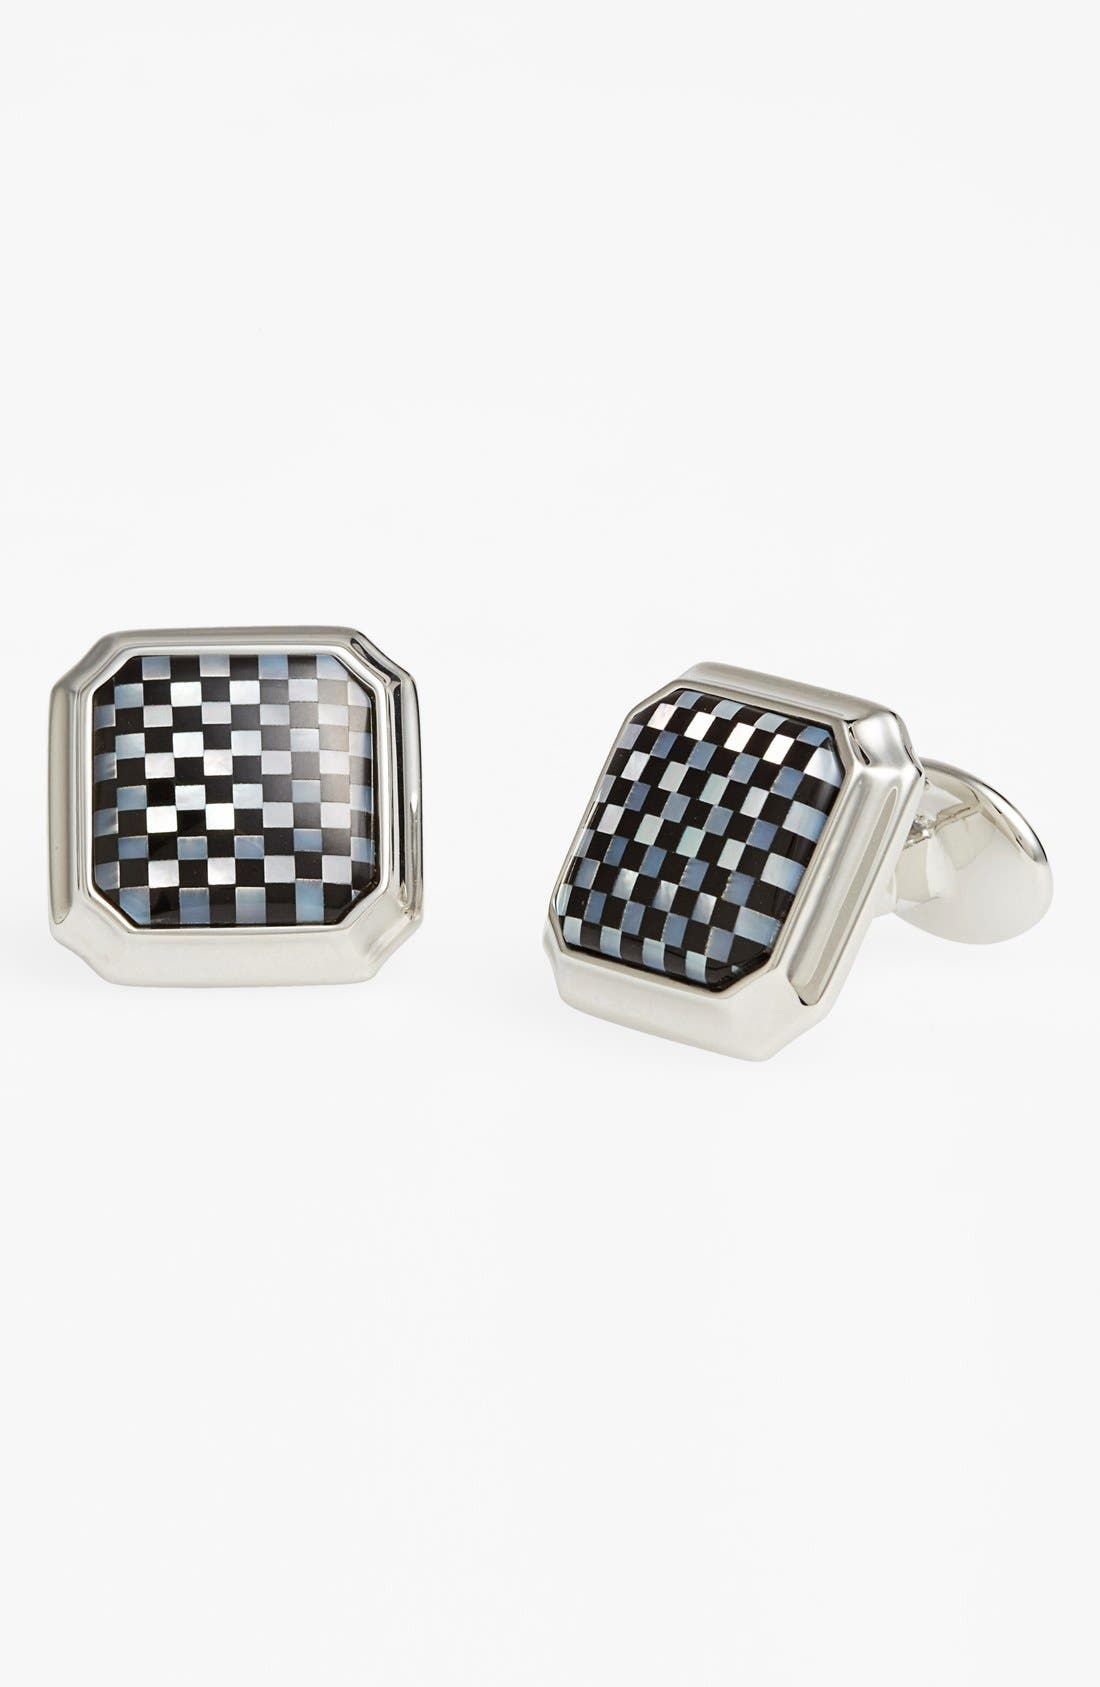 Alternate Image 1 Selected - David Donahue Mother of Pearl & Onyx Cuff Links